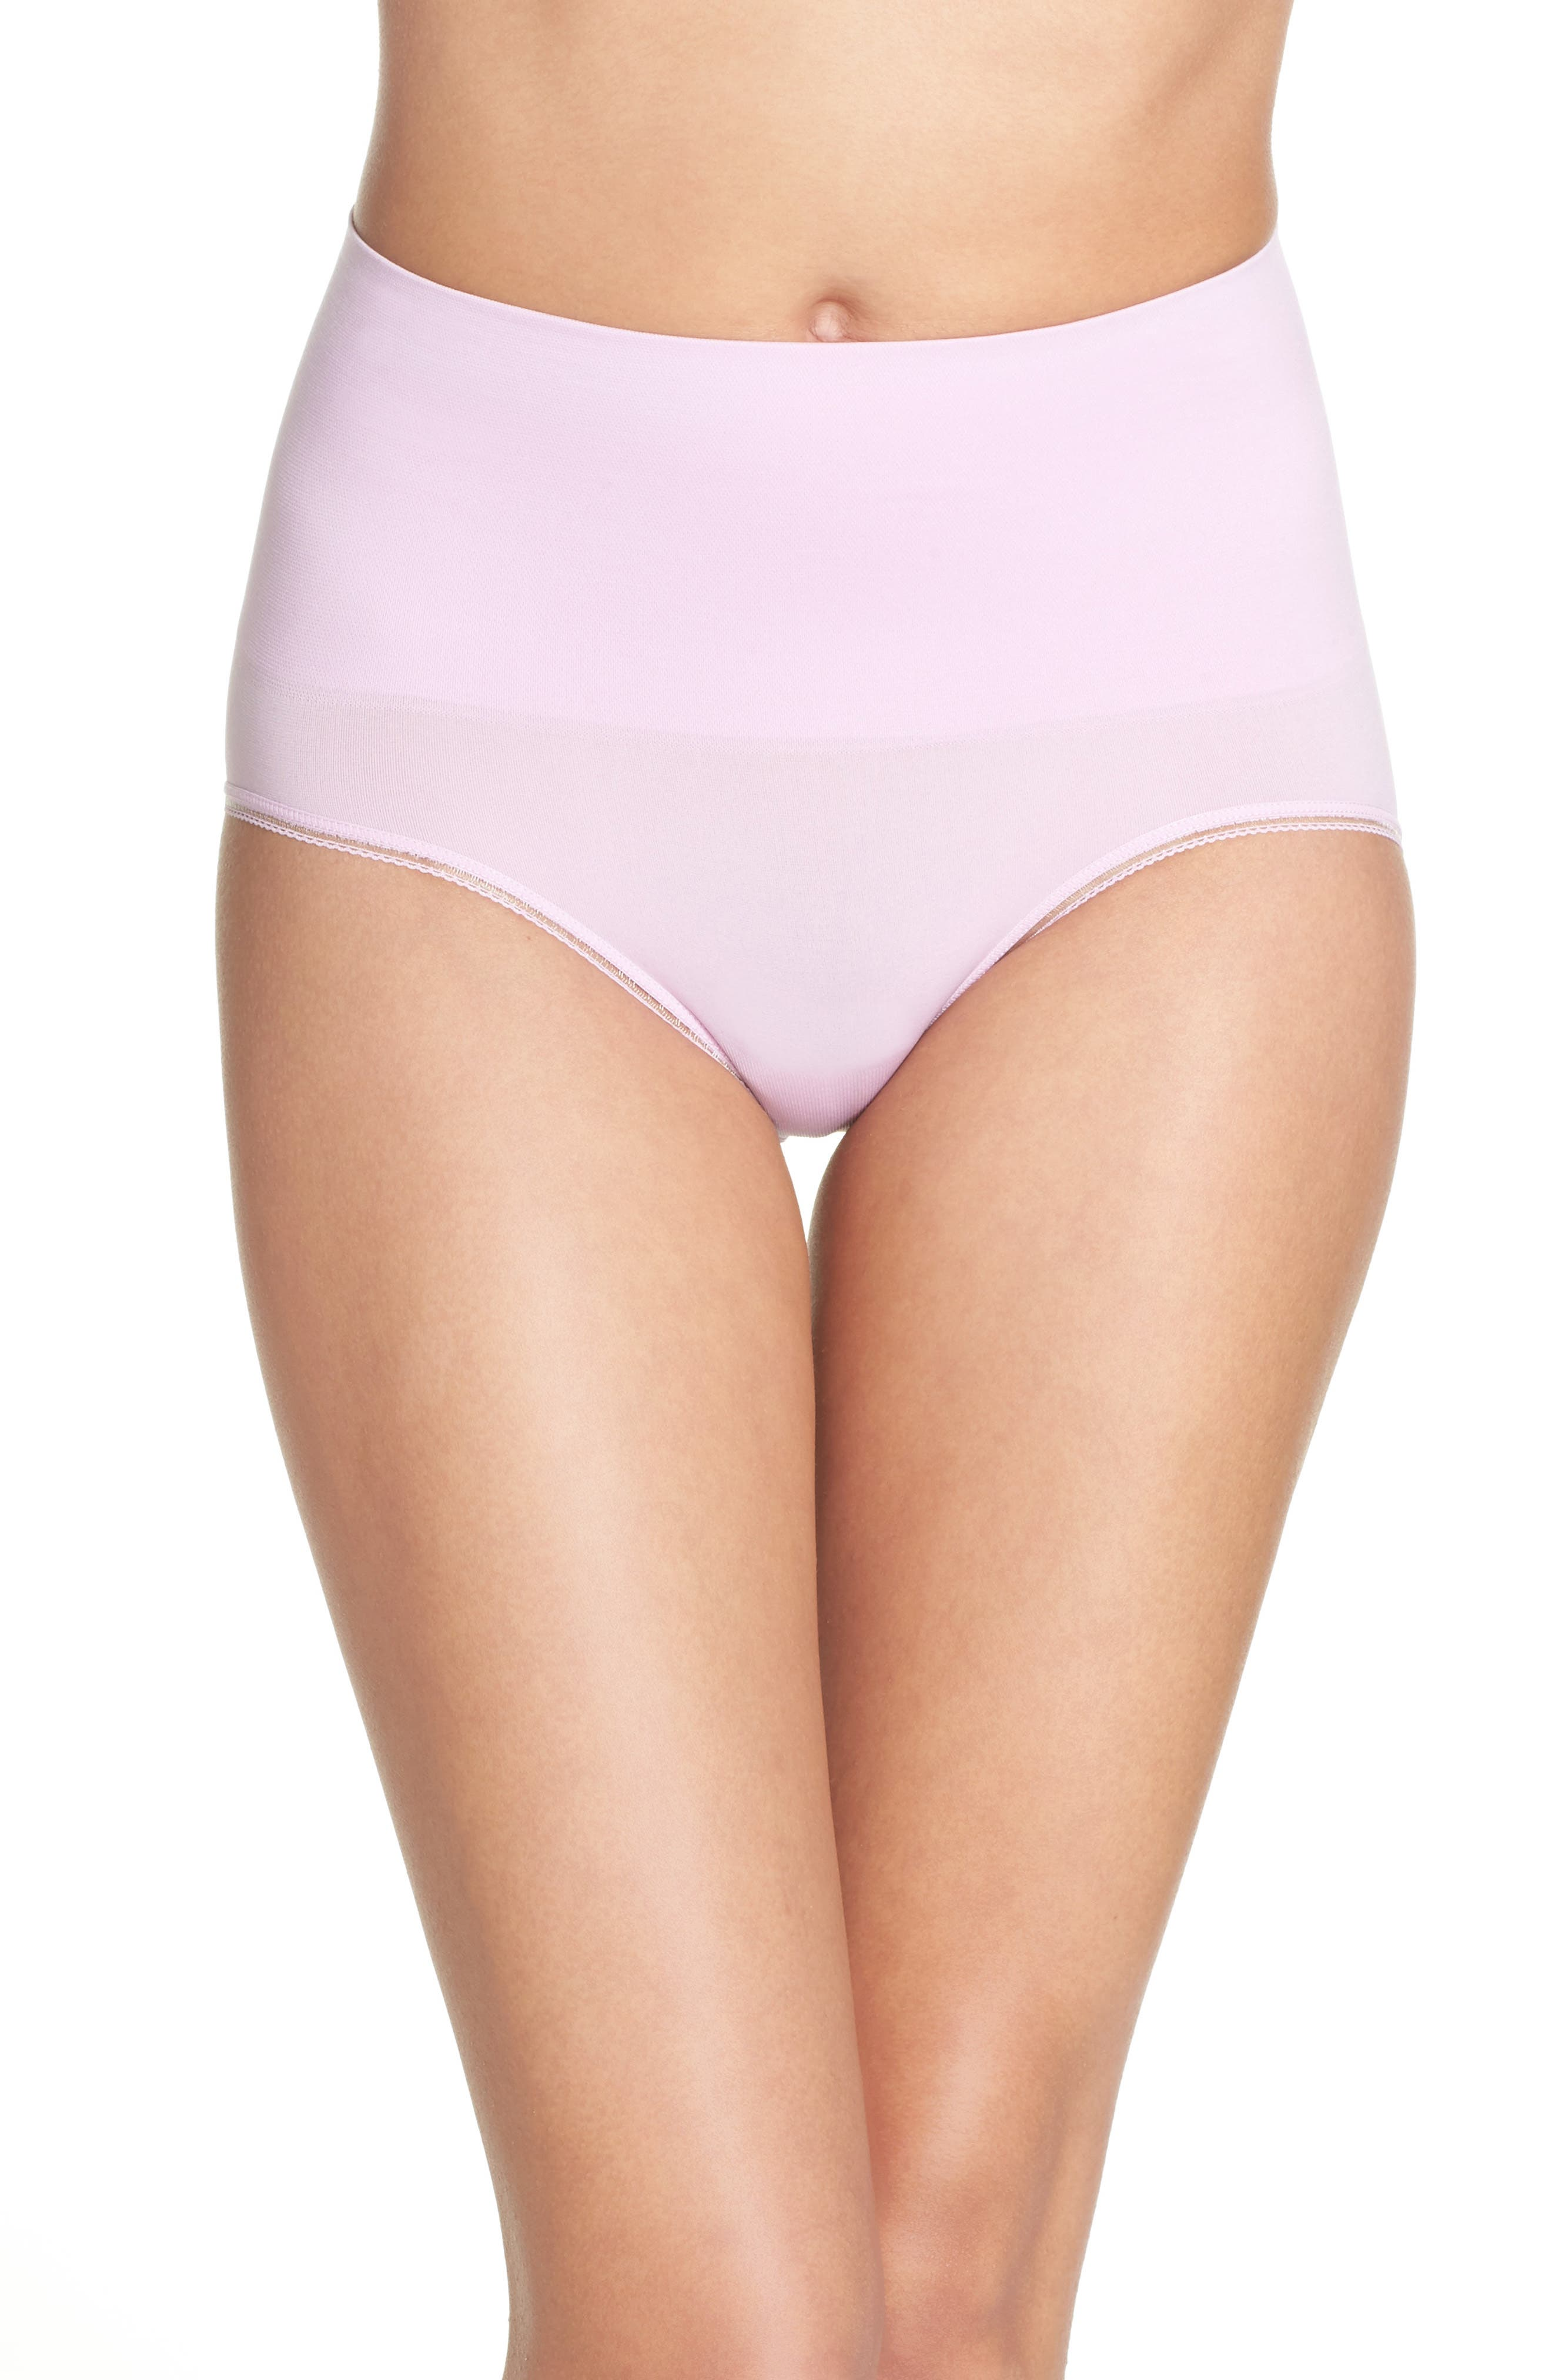 Alternate Image 1 Selected - Yummie Ultralight Seamless Shaping Briefs (2 for $30)